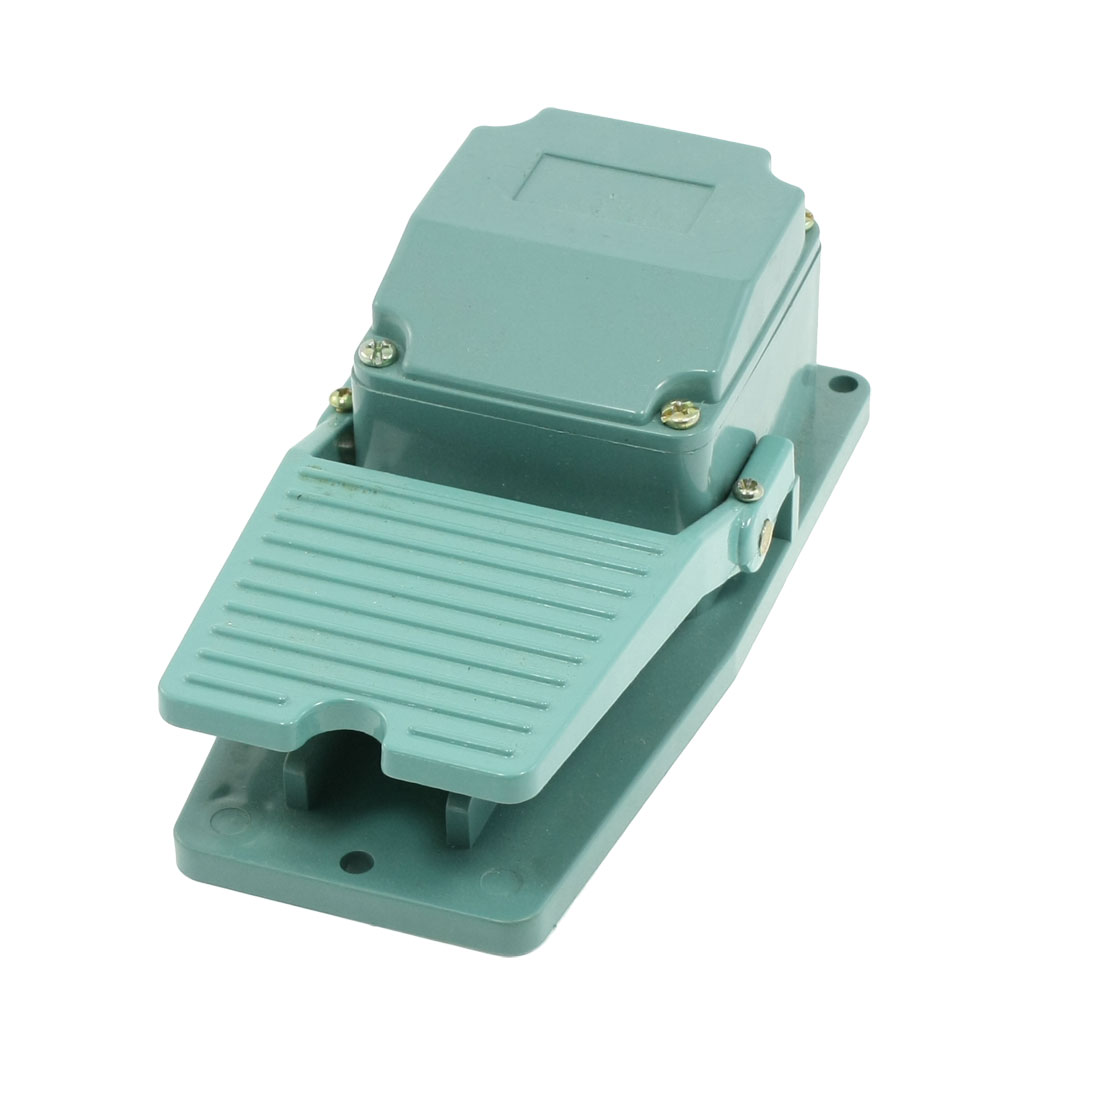 AC 250V 15A Green Antislip Metal Momentary Industrial Foot Pedal Switch Footswitch